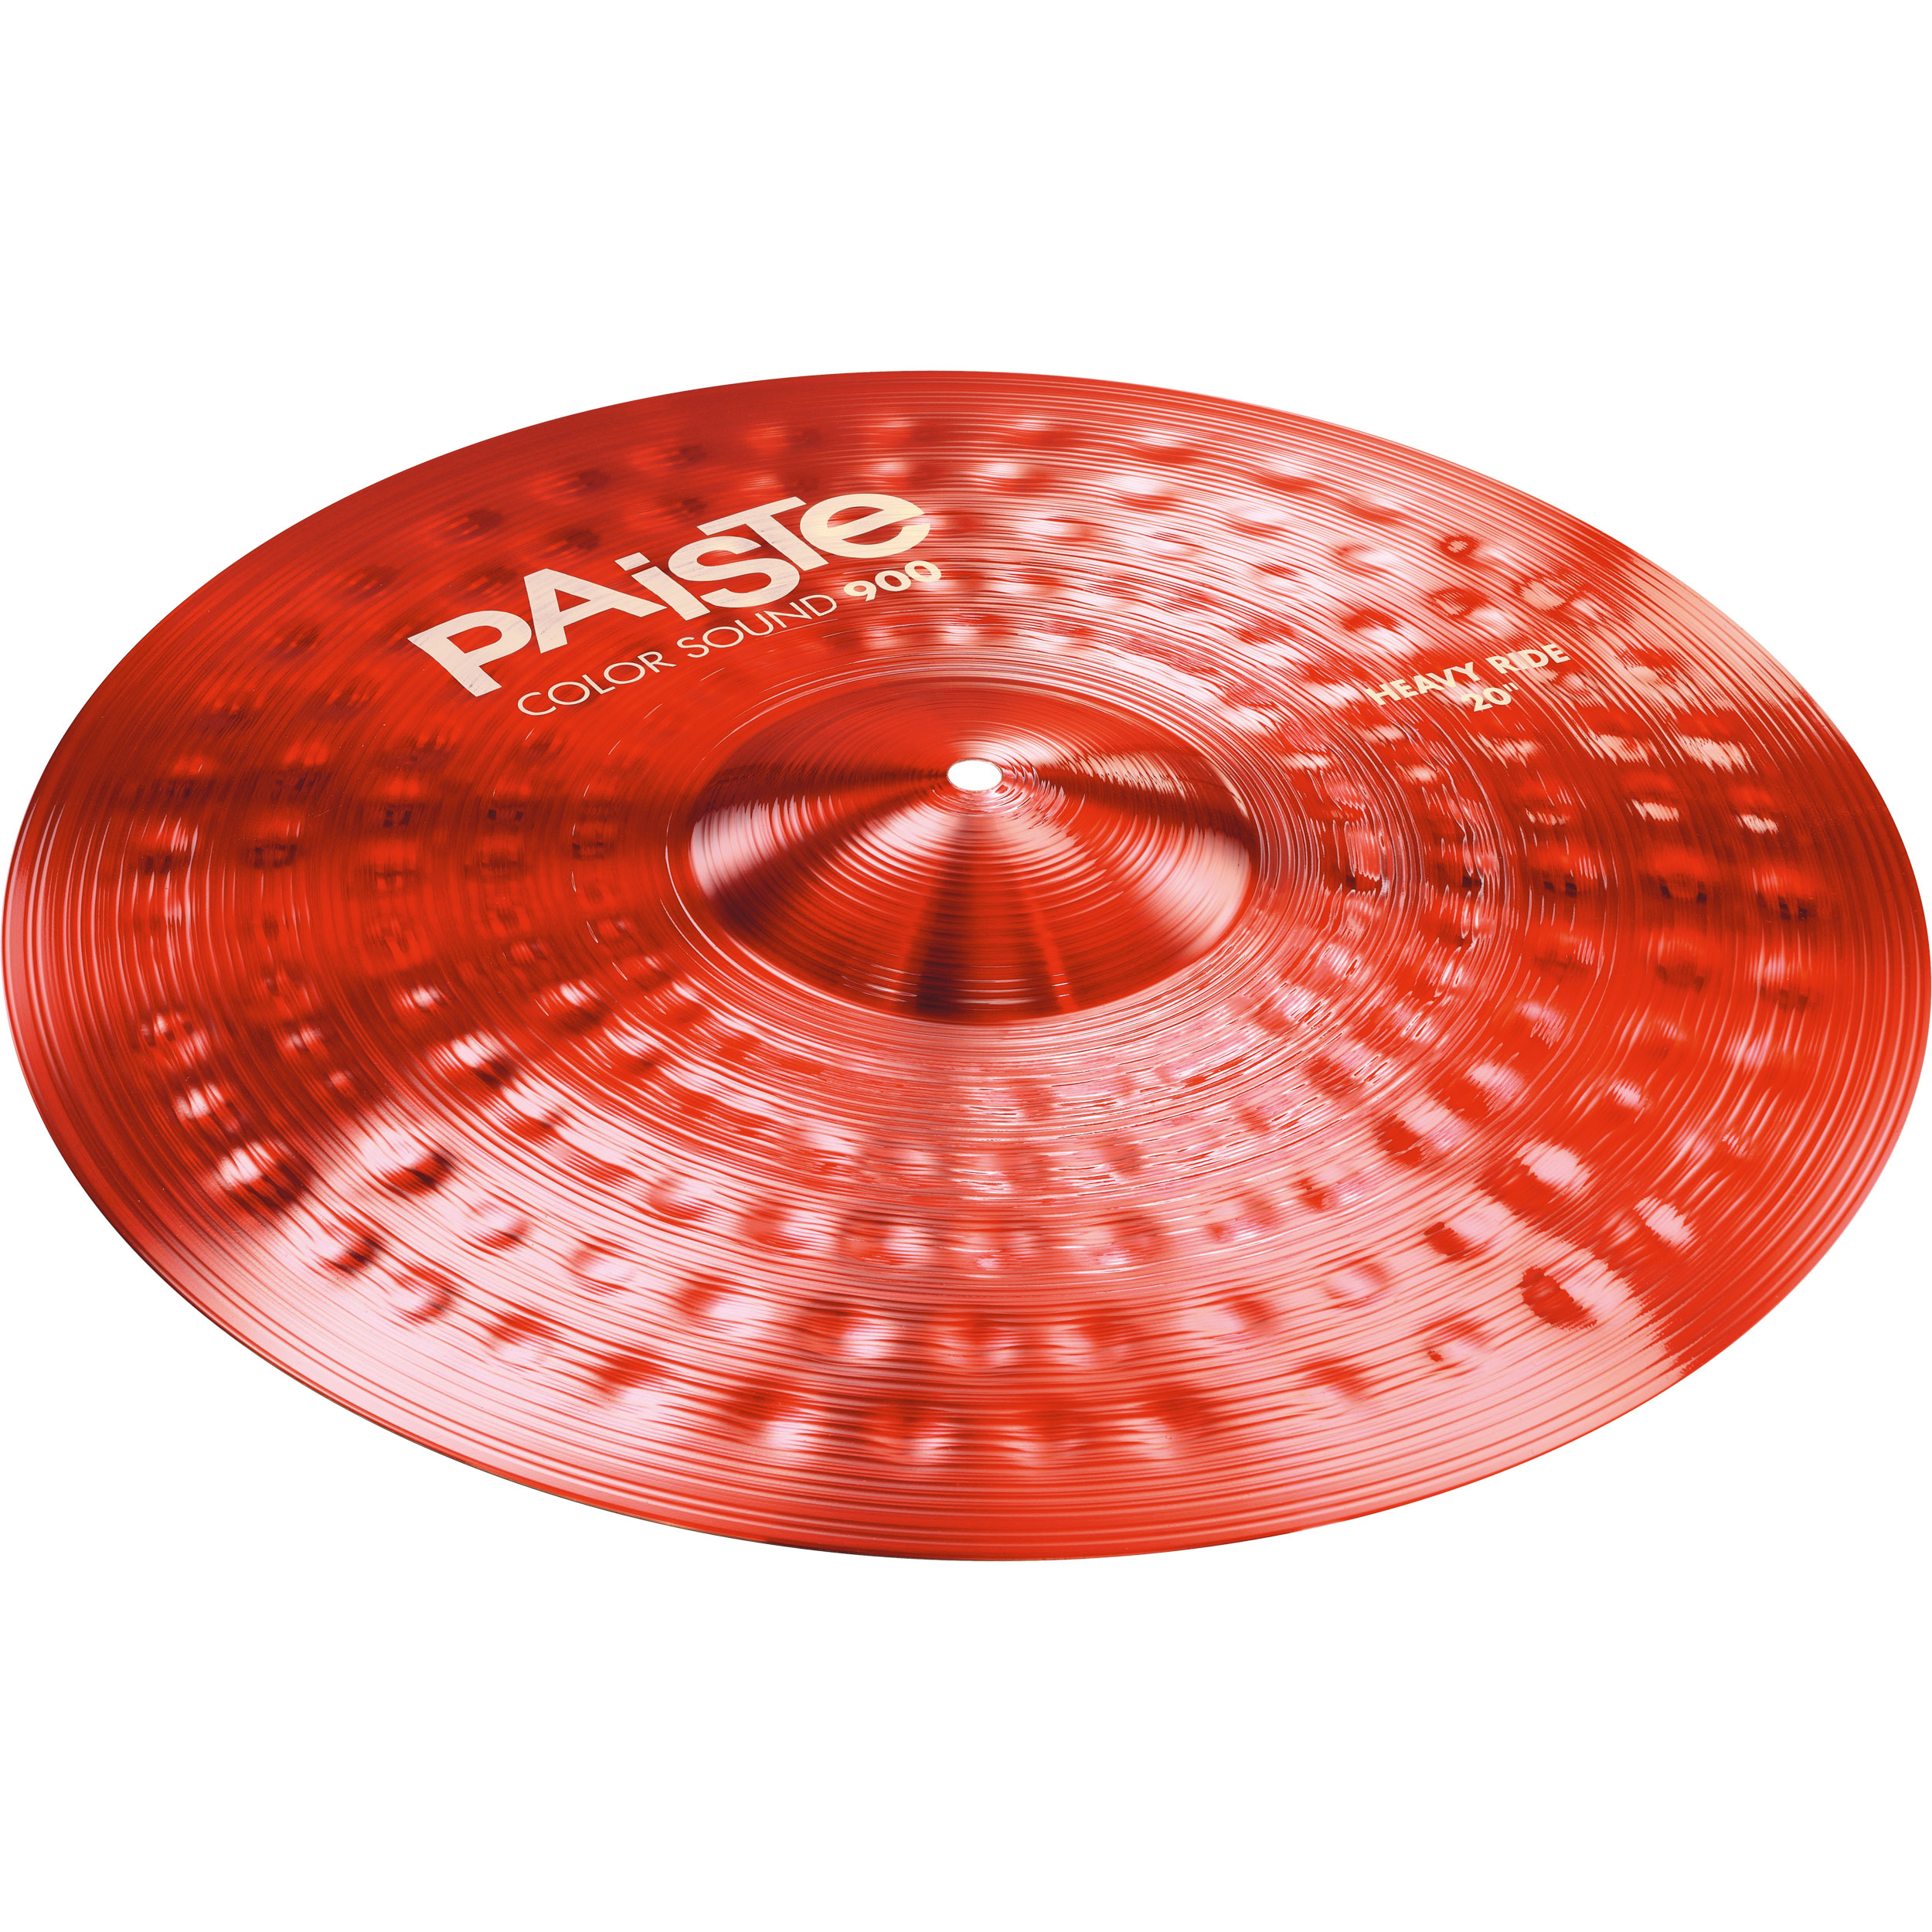 "Paiste 20"" Color Sound 900 Red Heavy Crash Cymbal"